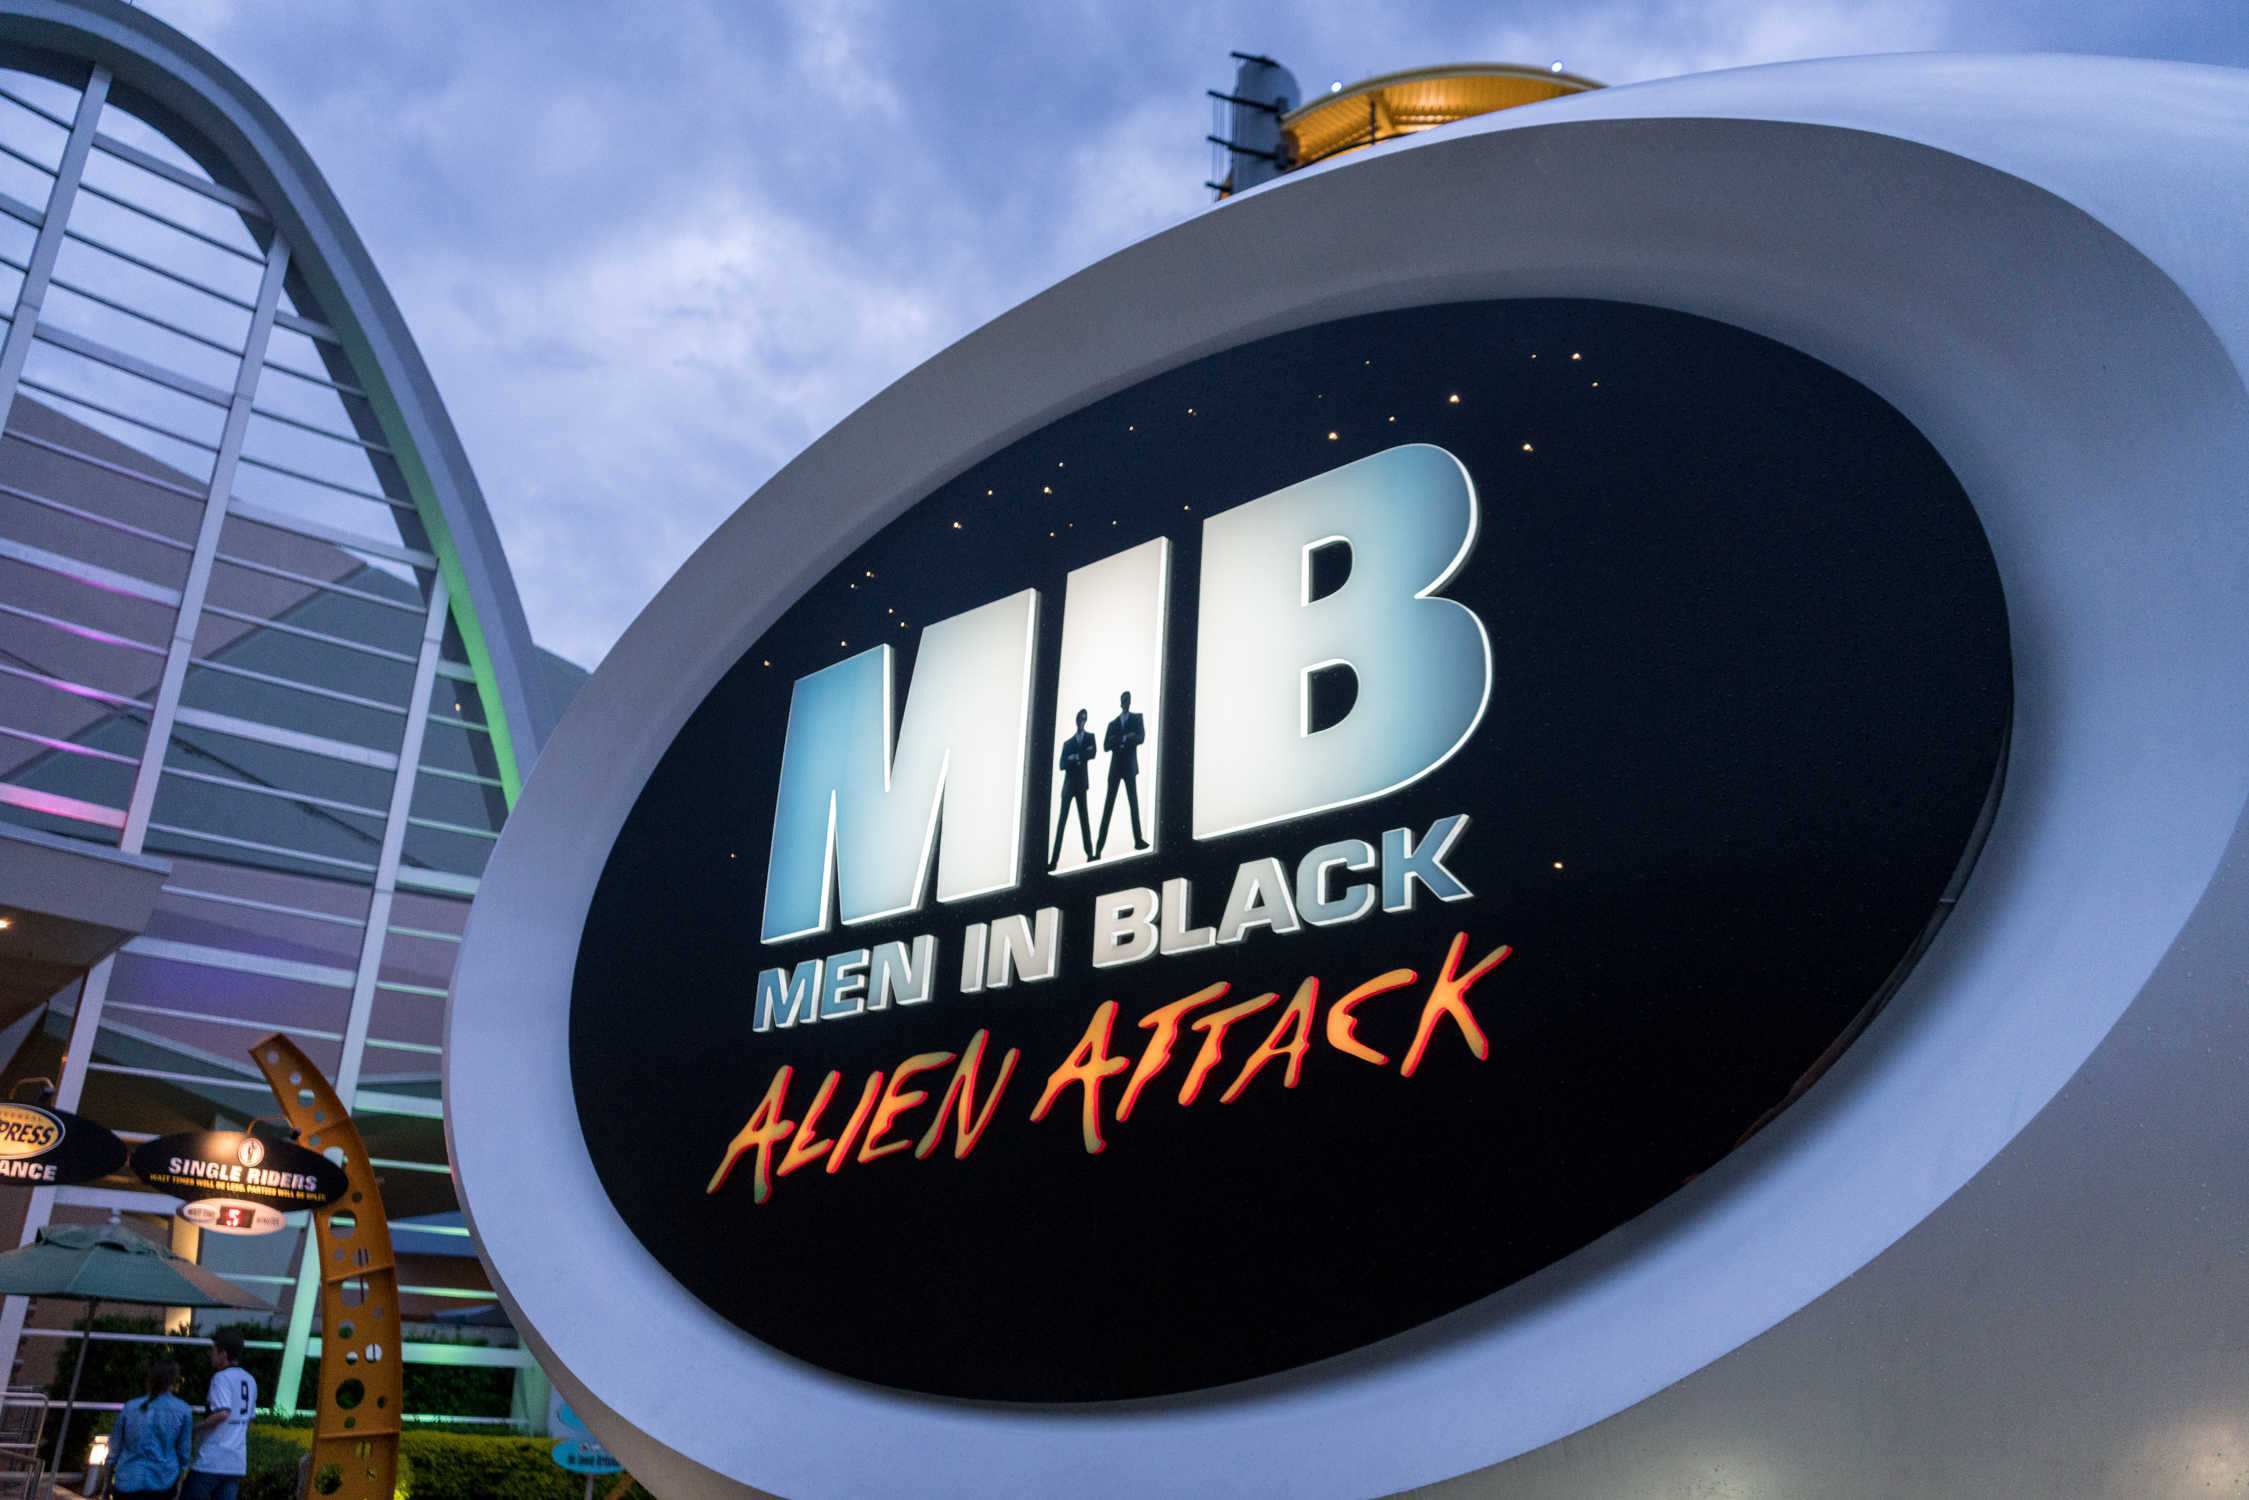 Ride technician dies at Men in Black: Alien Attack